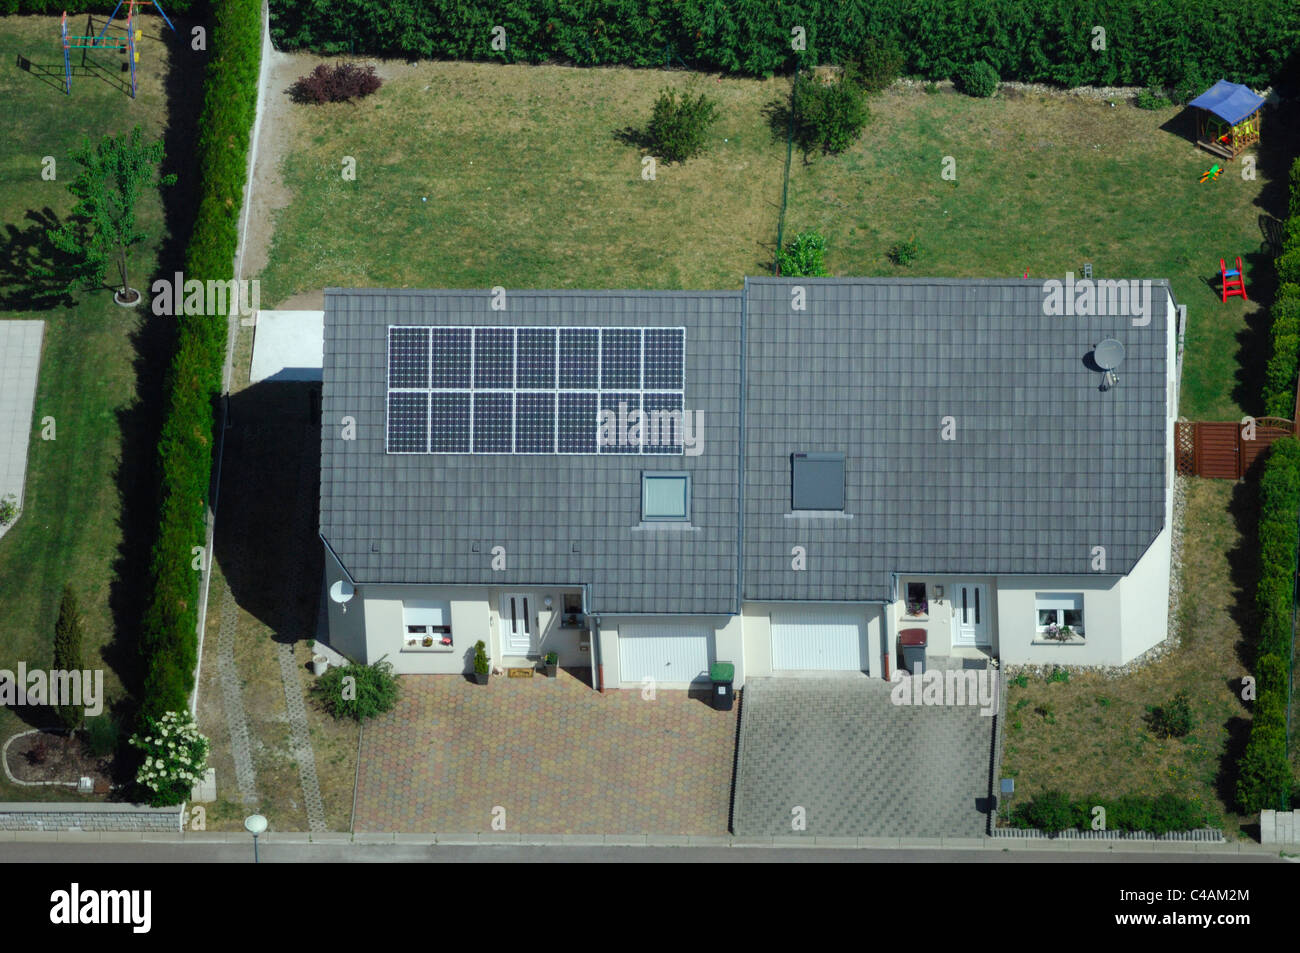 Aerial view of private house with photovoltaic panels on roof, France - Stock Image